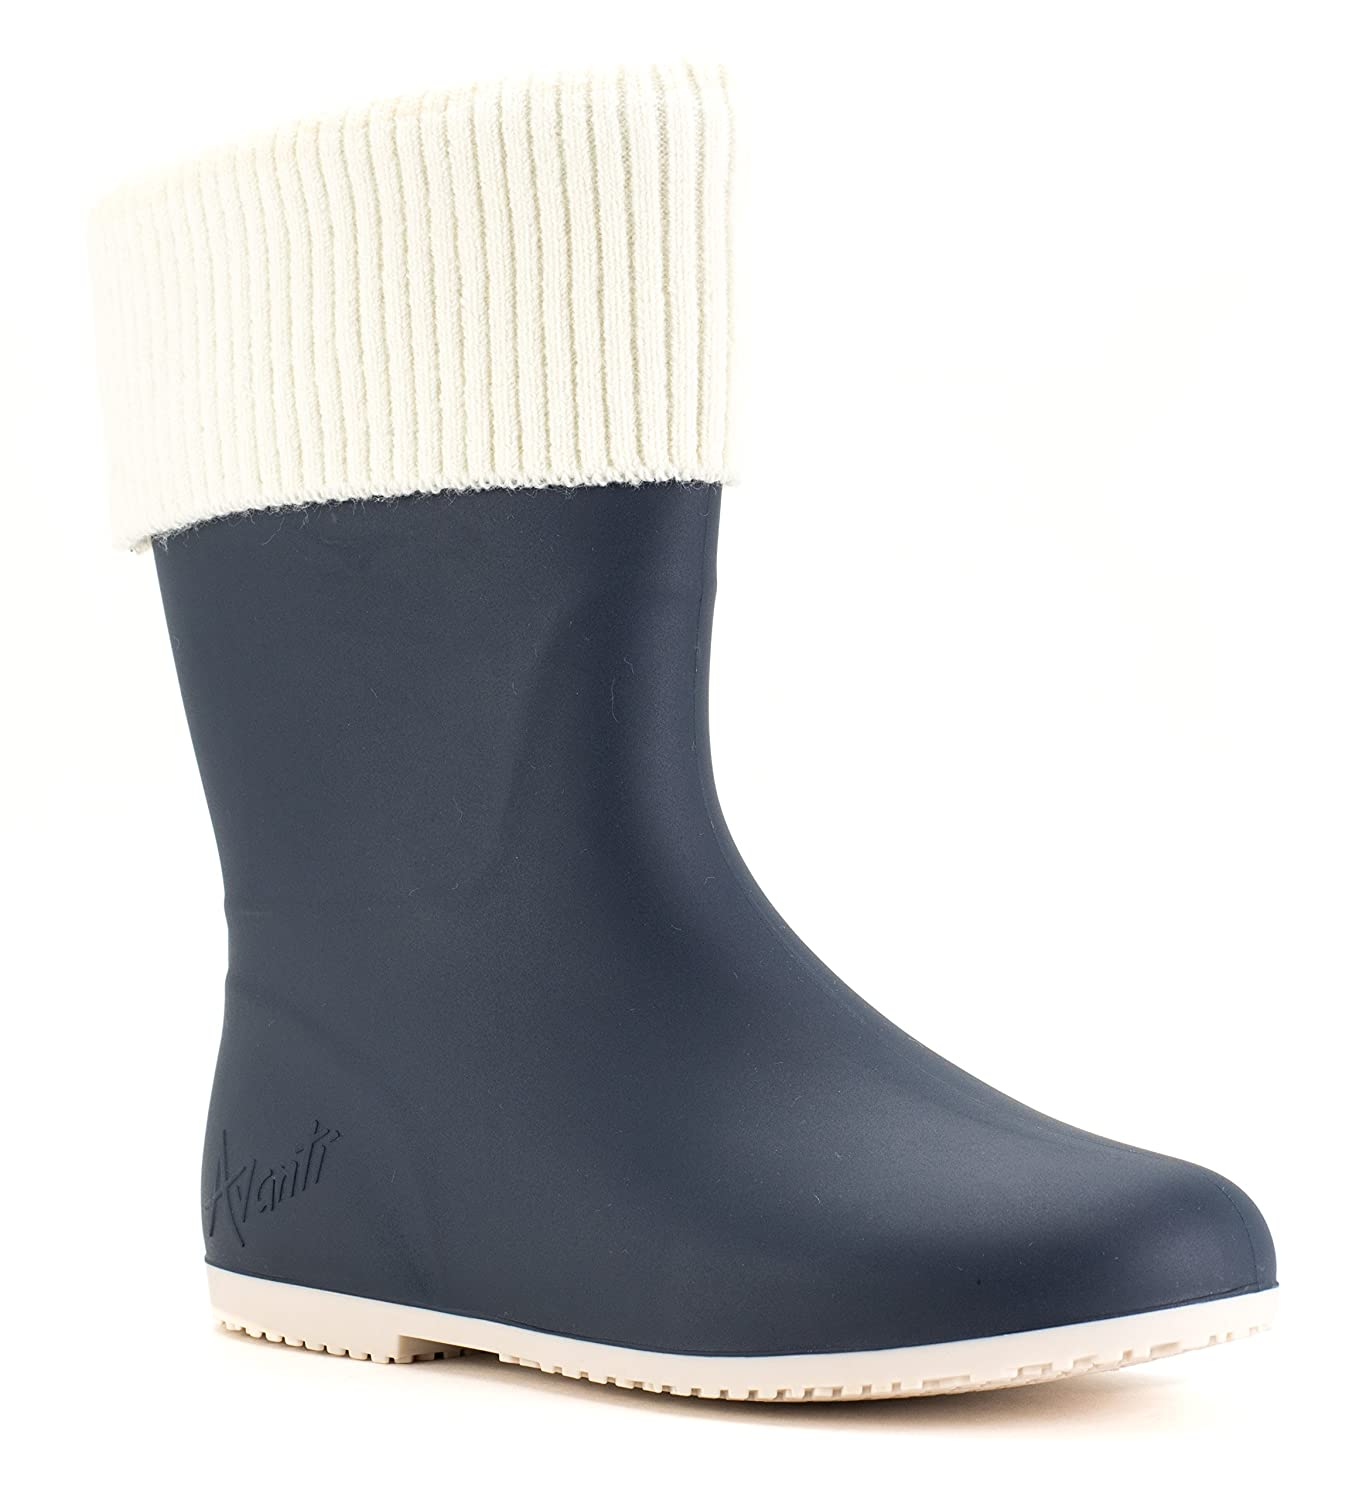 Avanti Storm Rain Boot Waterproof With Removable Knitted Cuff Monogram-Able Foldable B078SXBZ8M 9 B(M) US|Navy and Cream